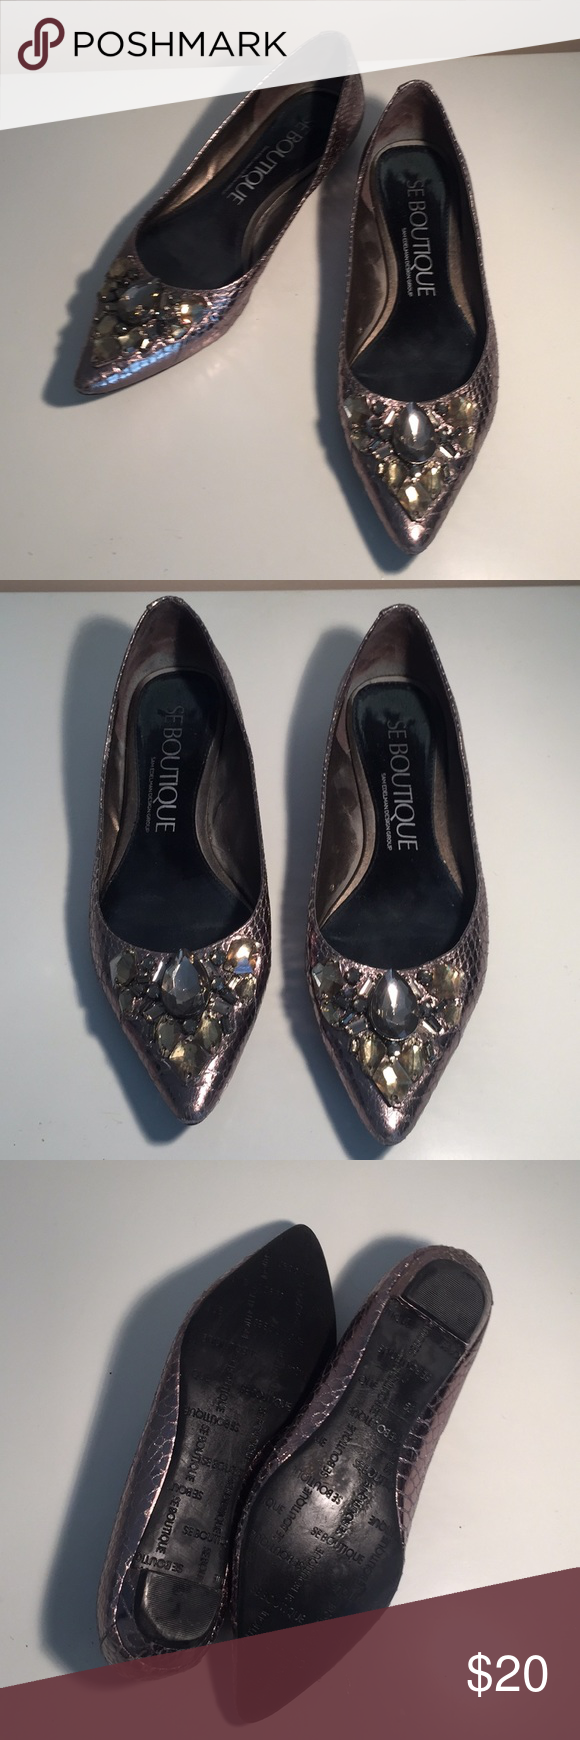 407032525d9ed1 Sam Edelman Boutique Sz 6 Metallic Jeweled Flats Sam Edelman Boutique Sz 6  Metallic Jeweled Flats SE Boutique by Sam Edelman Designs Shoes Flats    Loafers